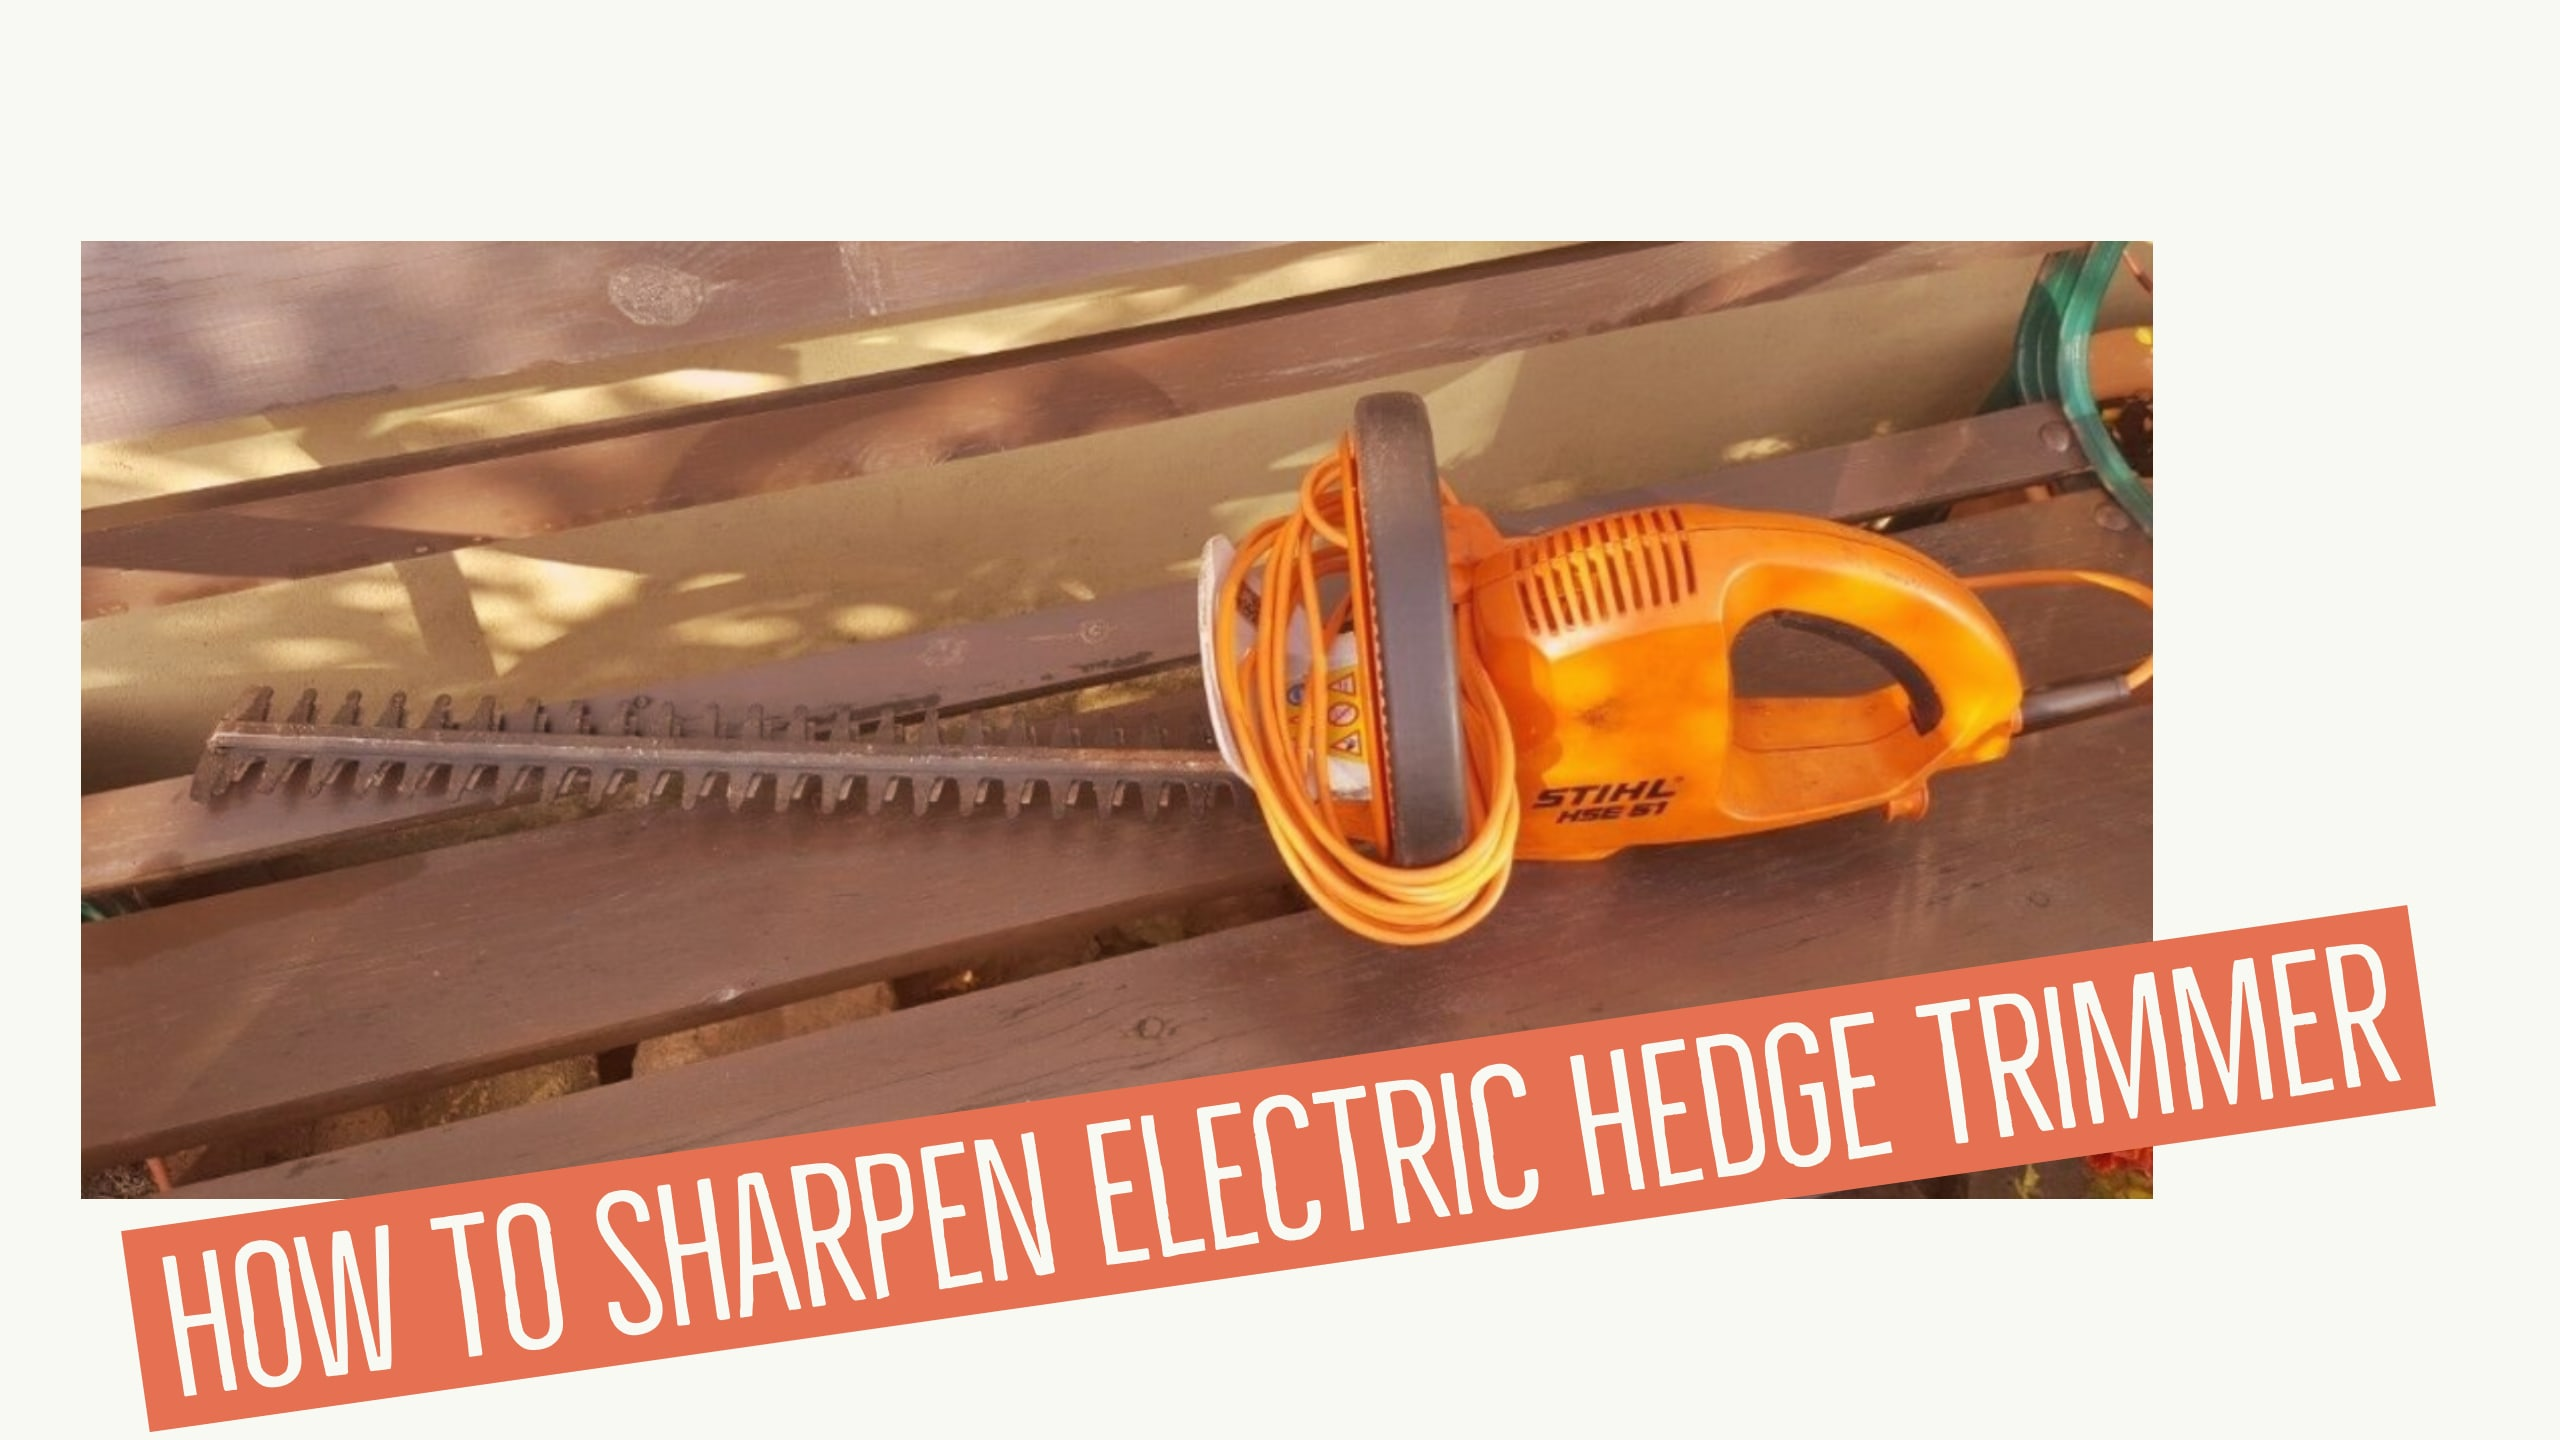 How to Sharpen Electric Hedge Trimmer – Simple Guide